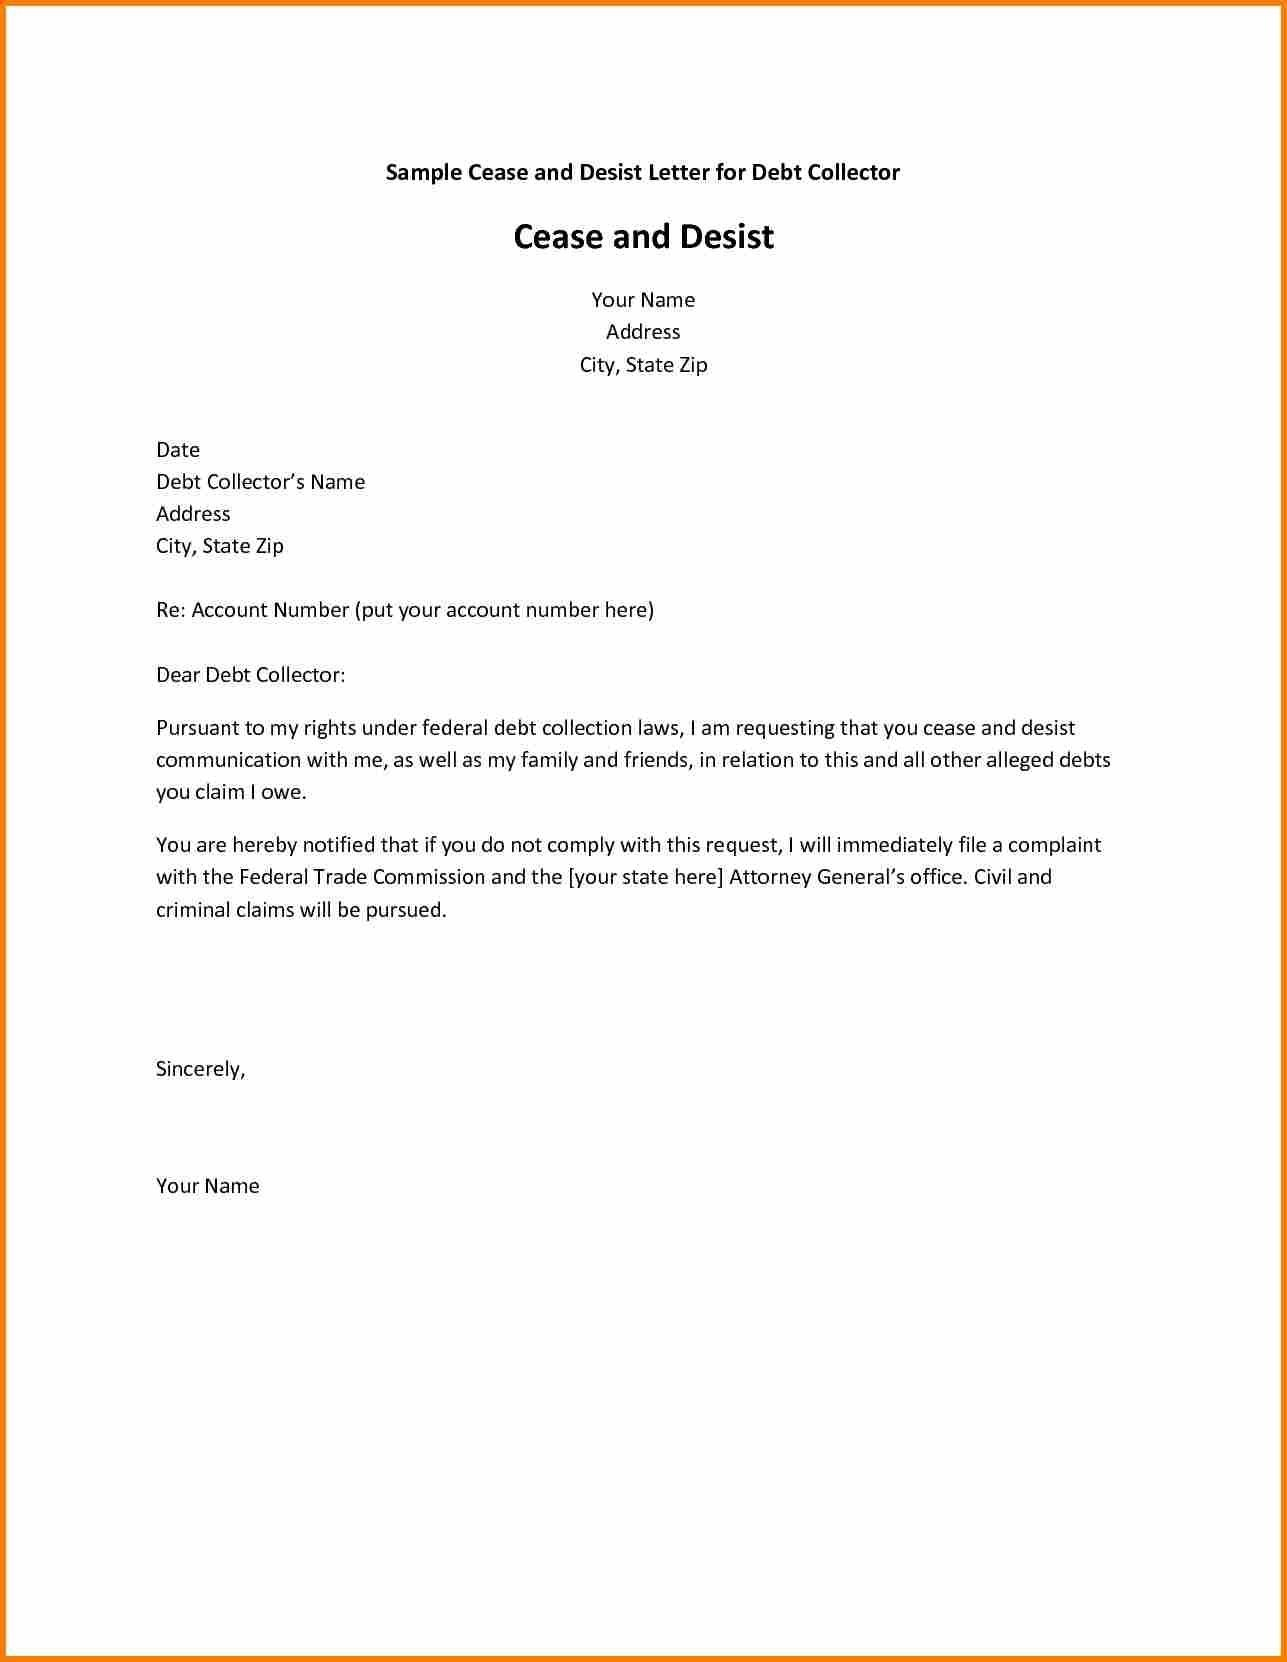 cease and desist collection letter template Collection-Debt Collection Cease and Desist Letter Template Copy Jury Duty Excuse Letter Refrence Cease and Desist 3-t